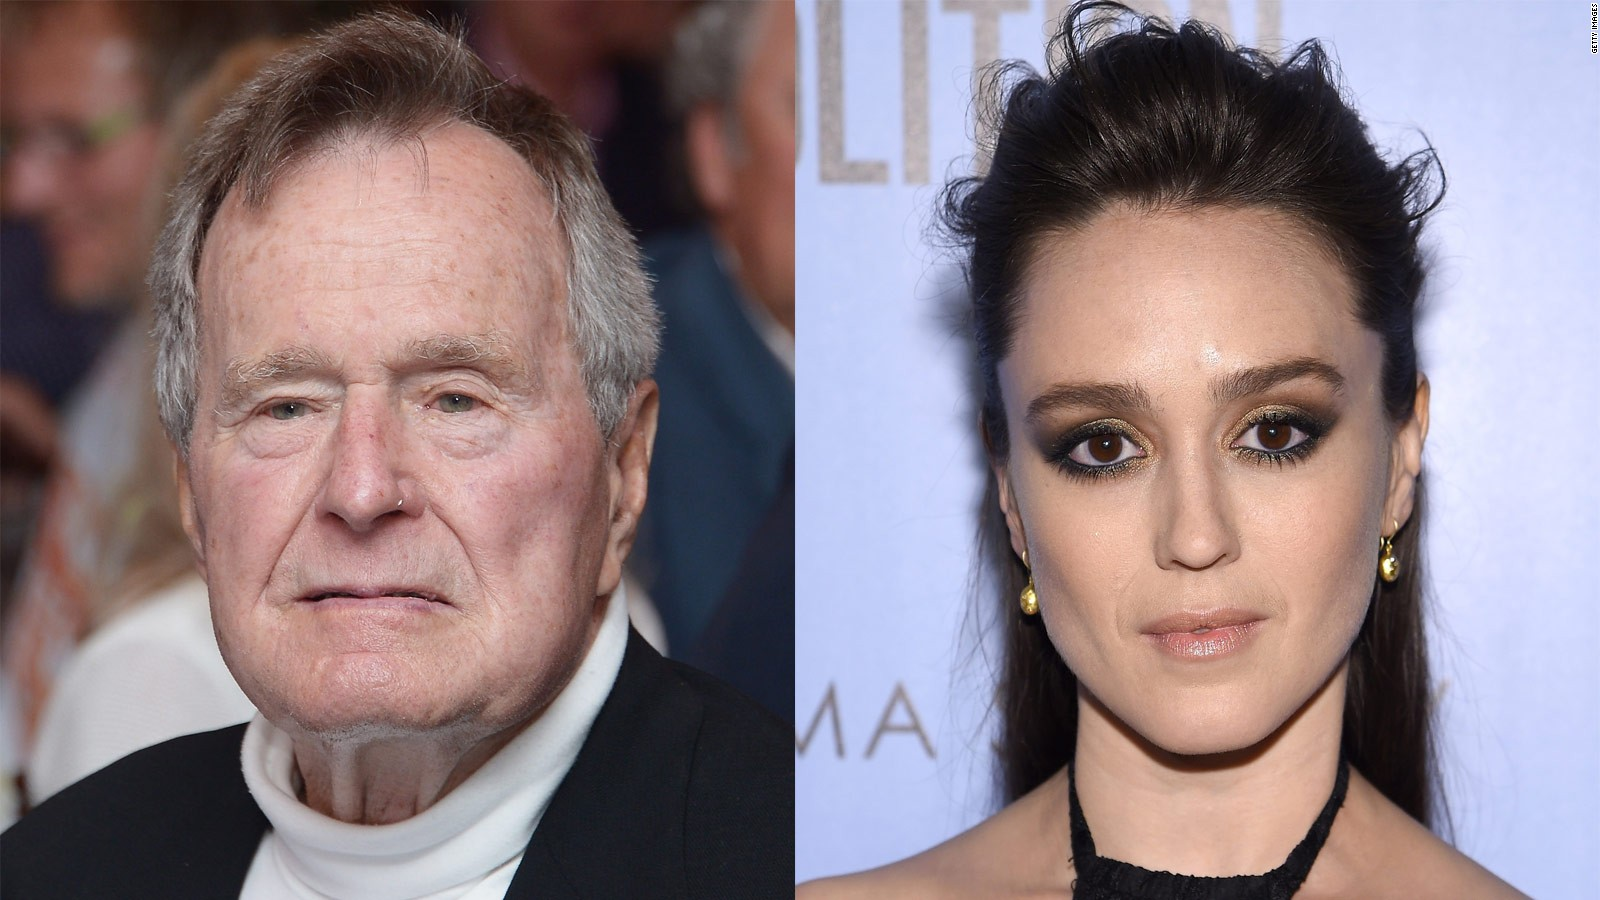 George H W Bush Responds After Actress Accuses Him Of Sexual